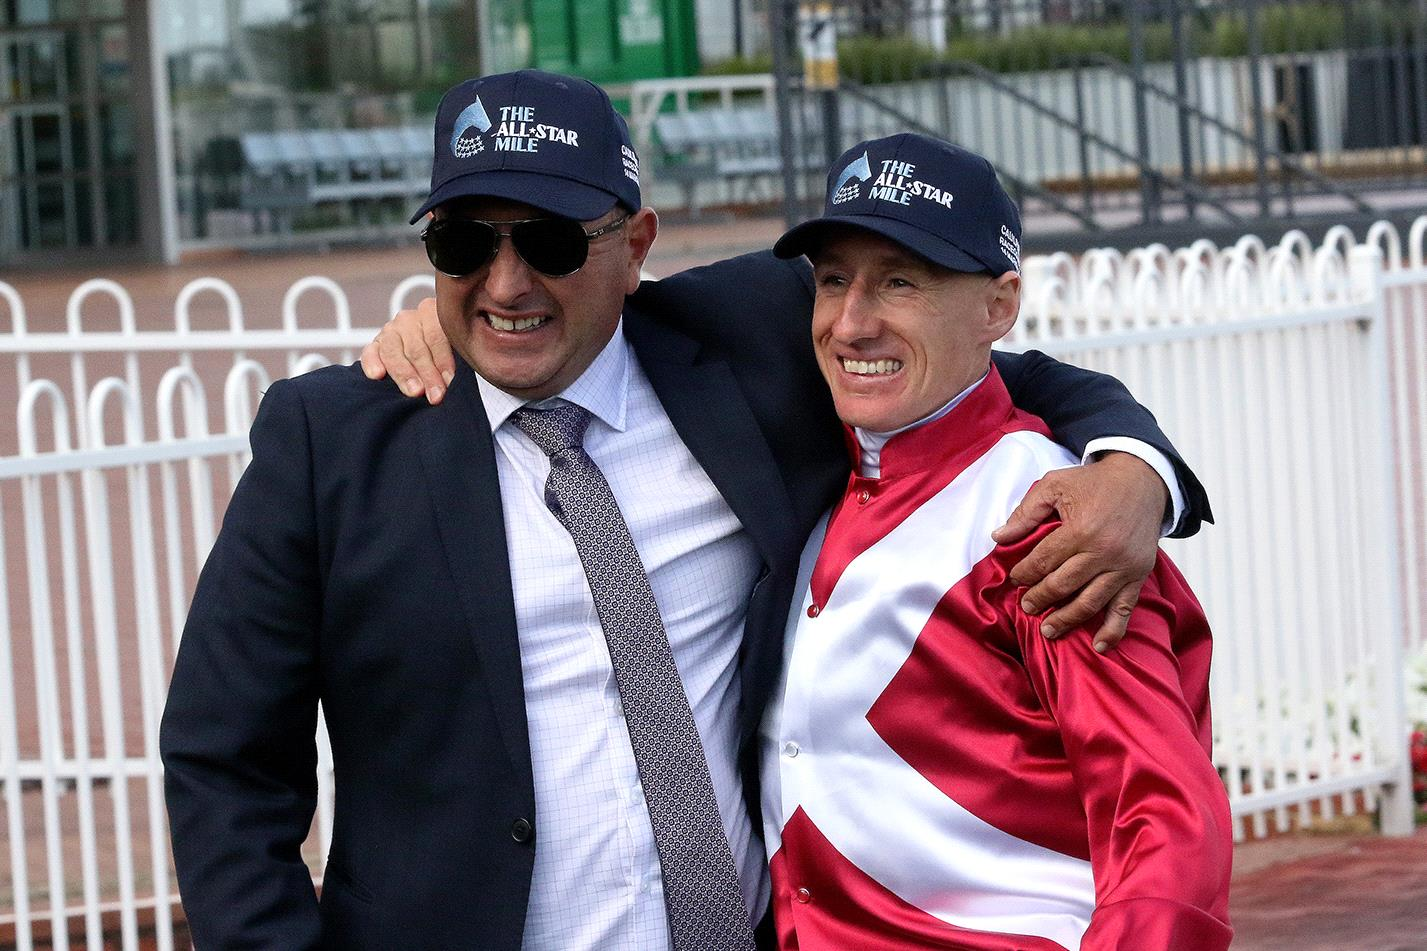 Williams and Pike combine again with a strong chance in the Ascot closer this Saturday.